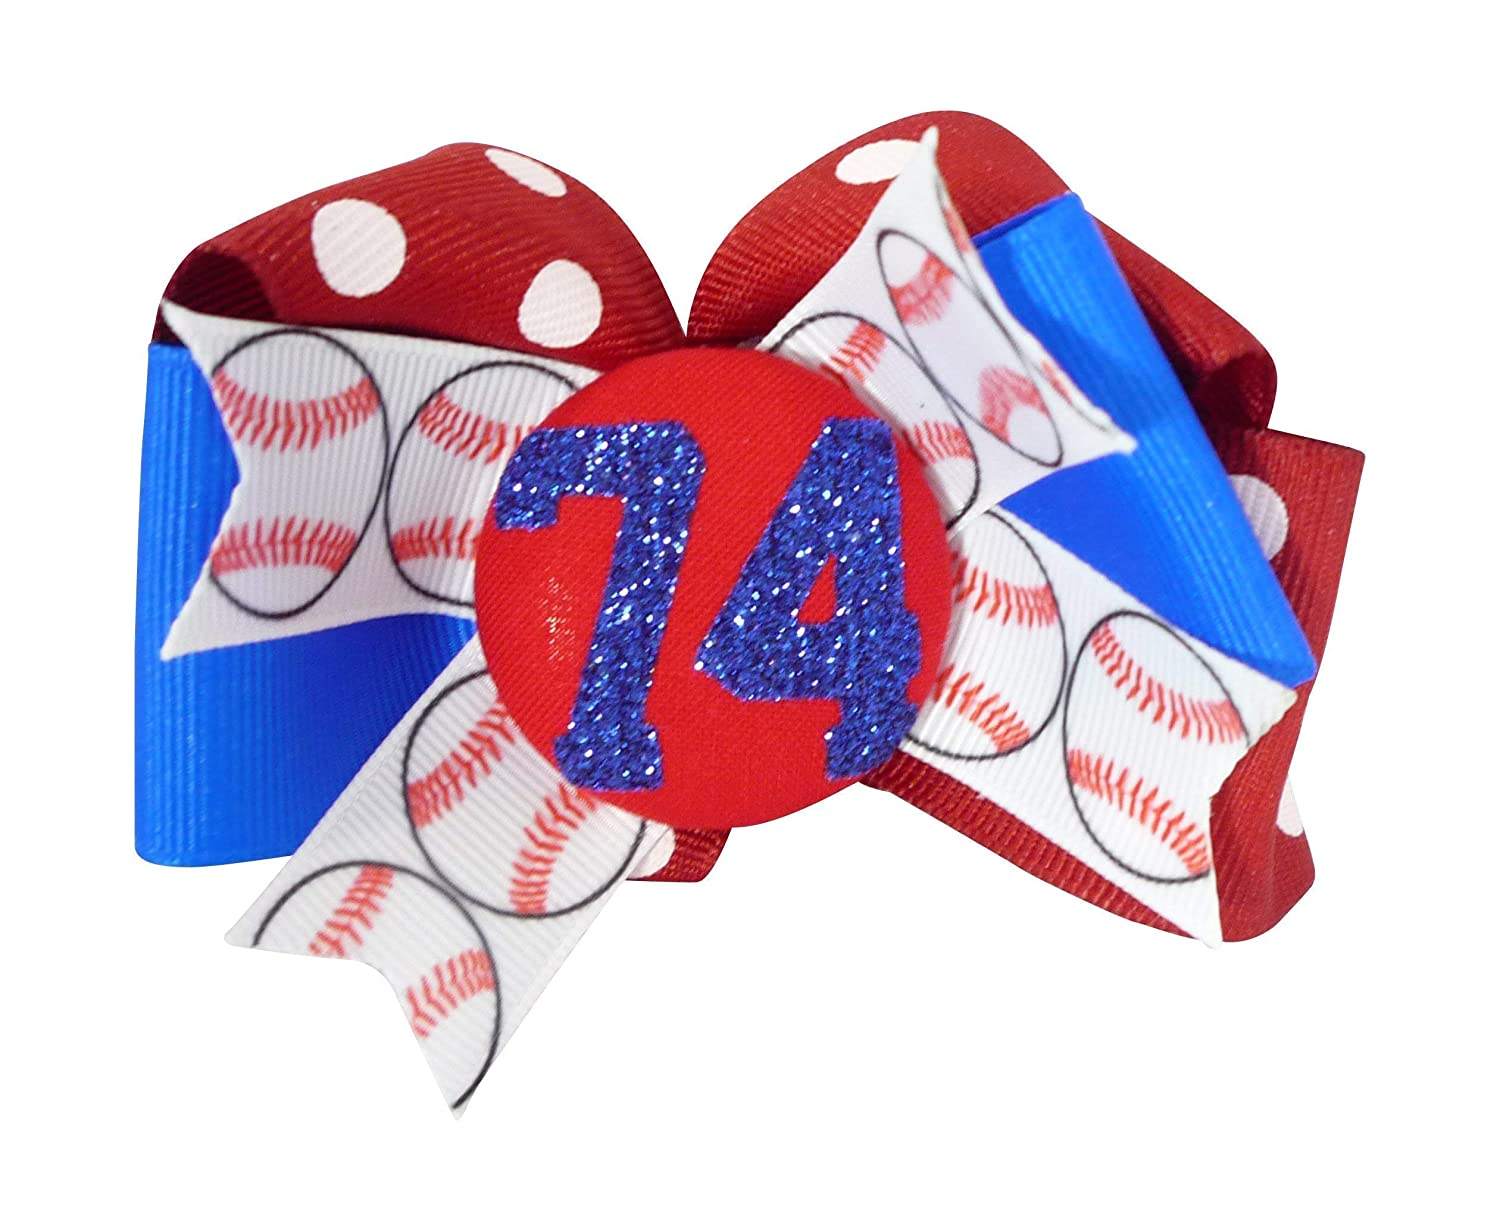 Baseball Glitter Hair Bow Clip for Blue Electric Red R Max 68% OFF and Girl- Max 79% OFF